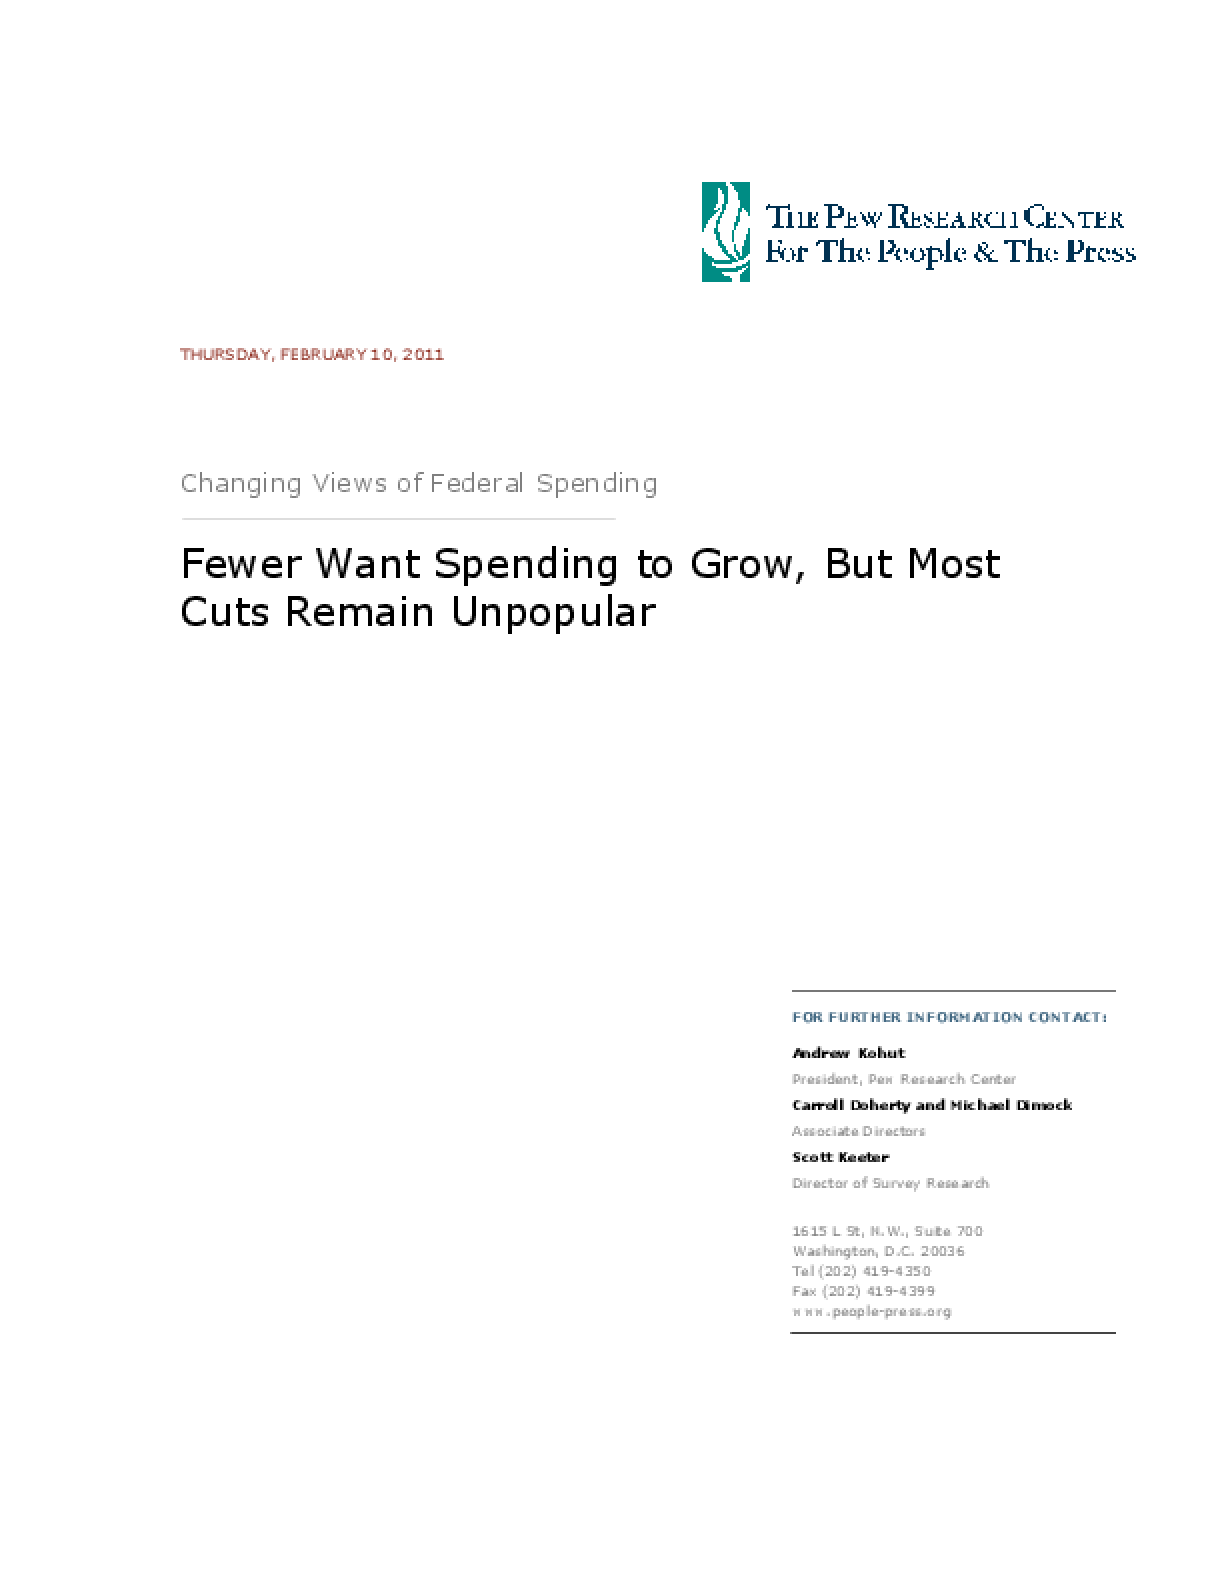 Changing Views of Federal Spending: Fewer Want Spending to Grow, But Most Cuts Remain Unpopular